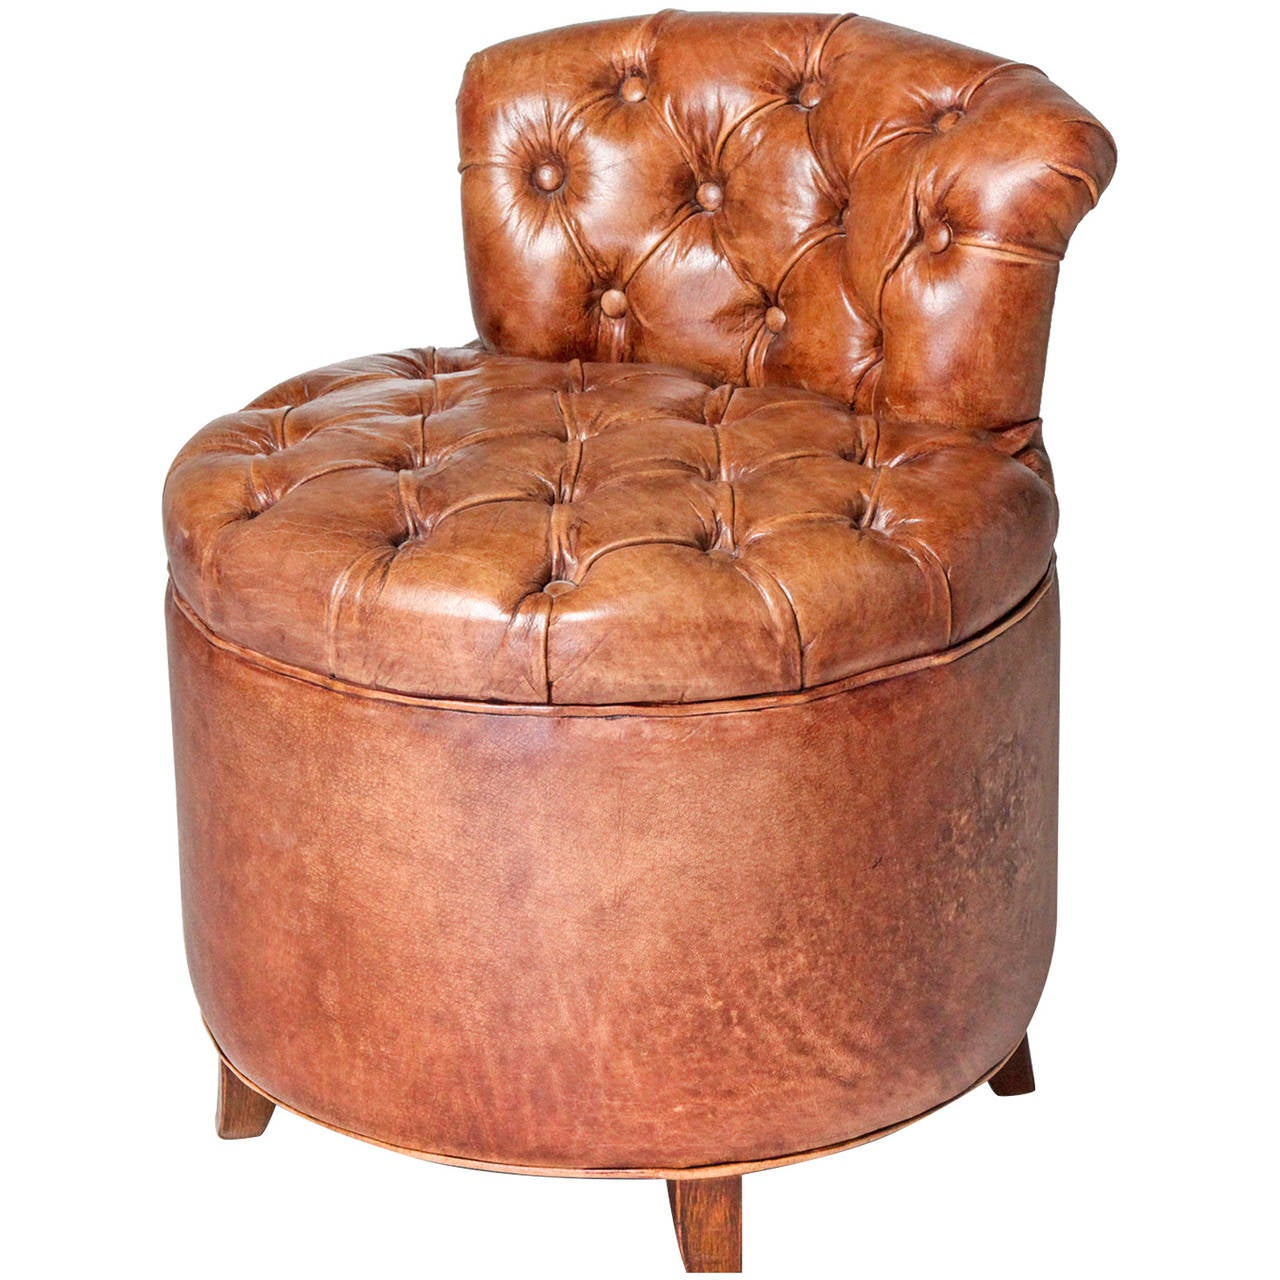 Tufted leather chair for sale at 1stdibs for Tufted couches for sale